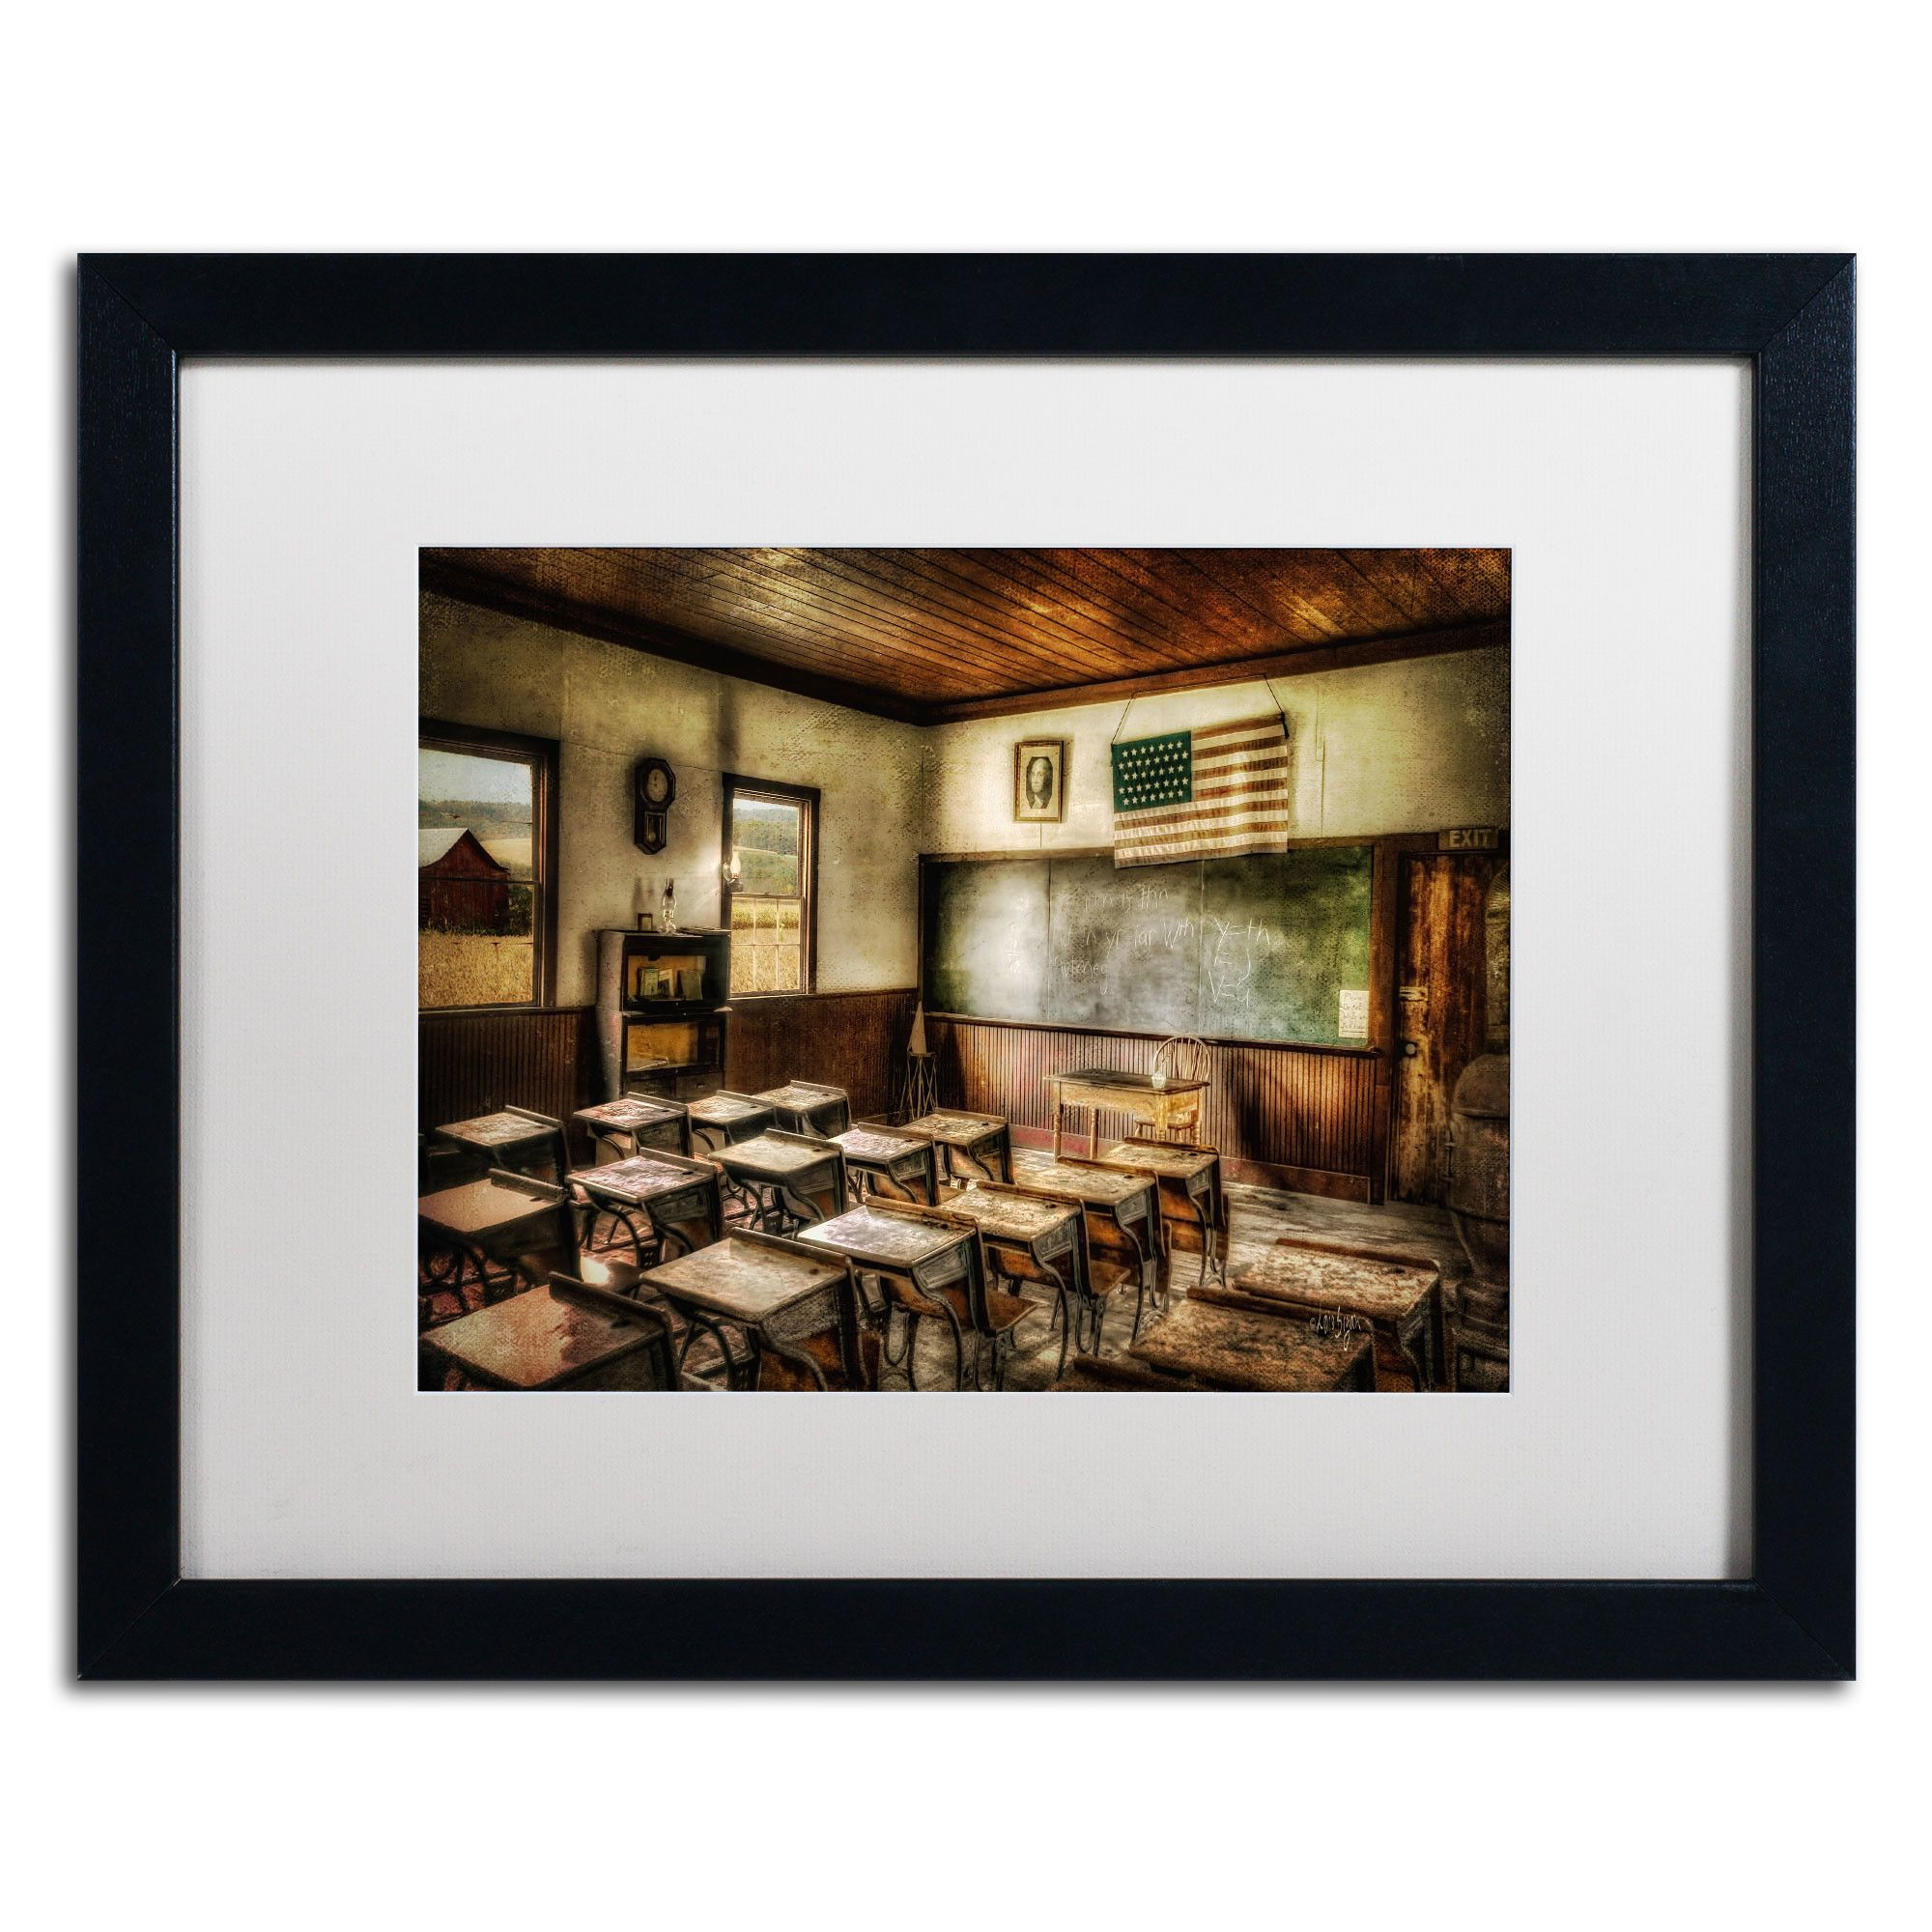 One Room School by Lois Bryan Framed Photographic Print